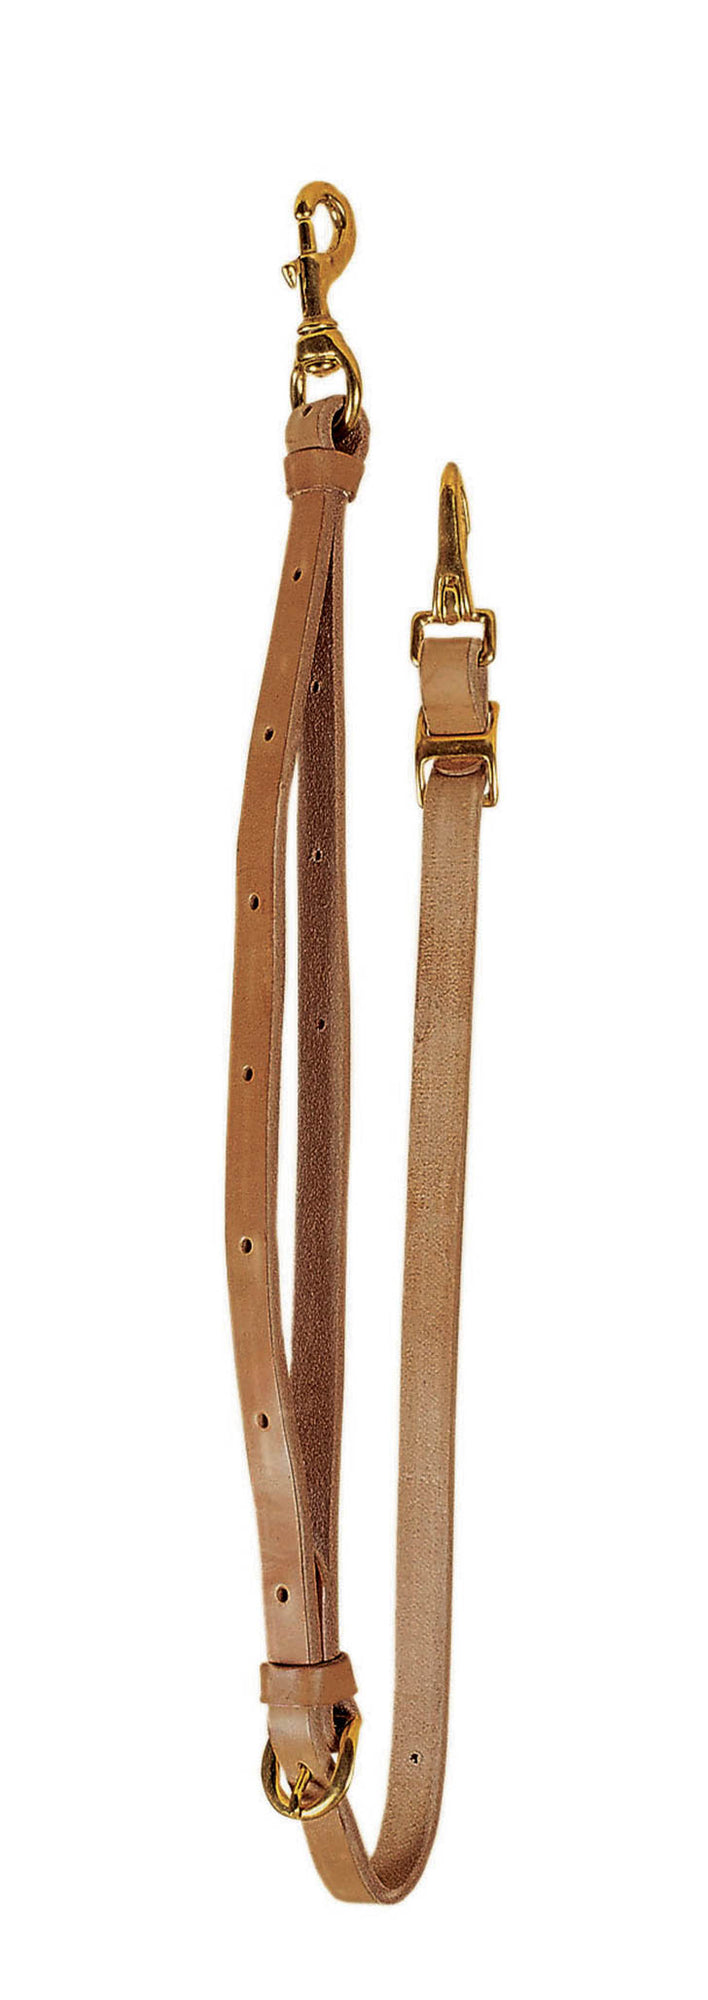 "3/4"" Harness Leather Tie Down With Solid Brass Hardware"